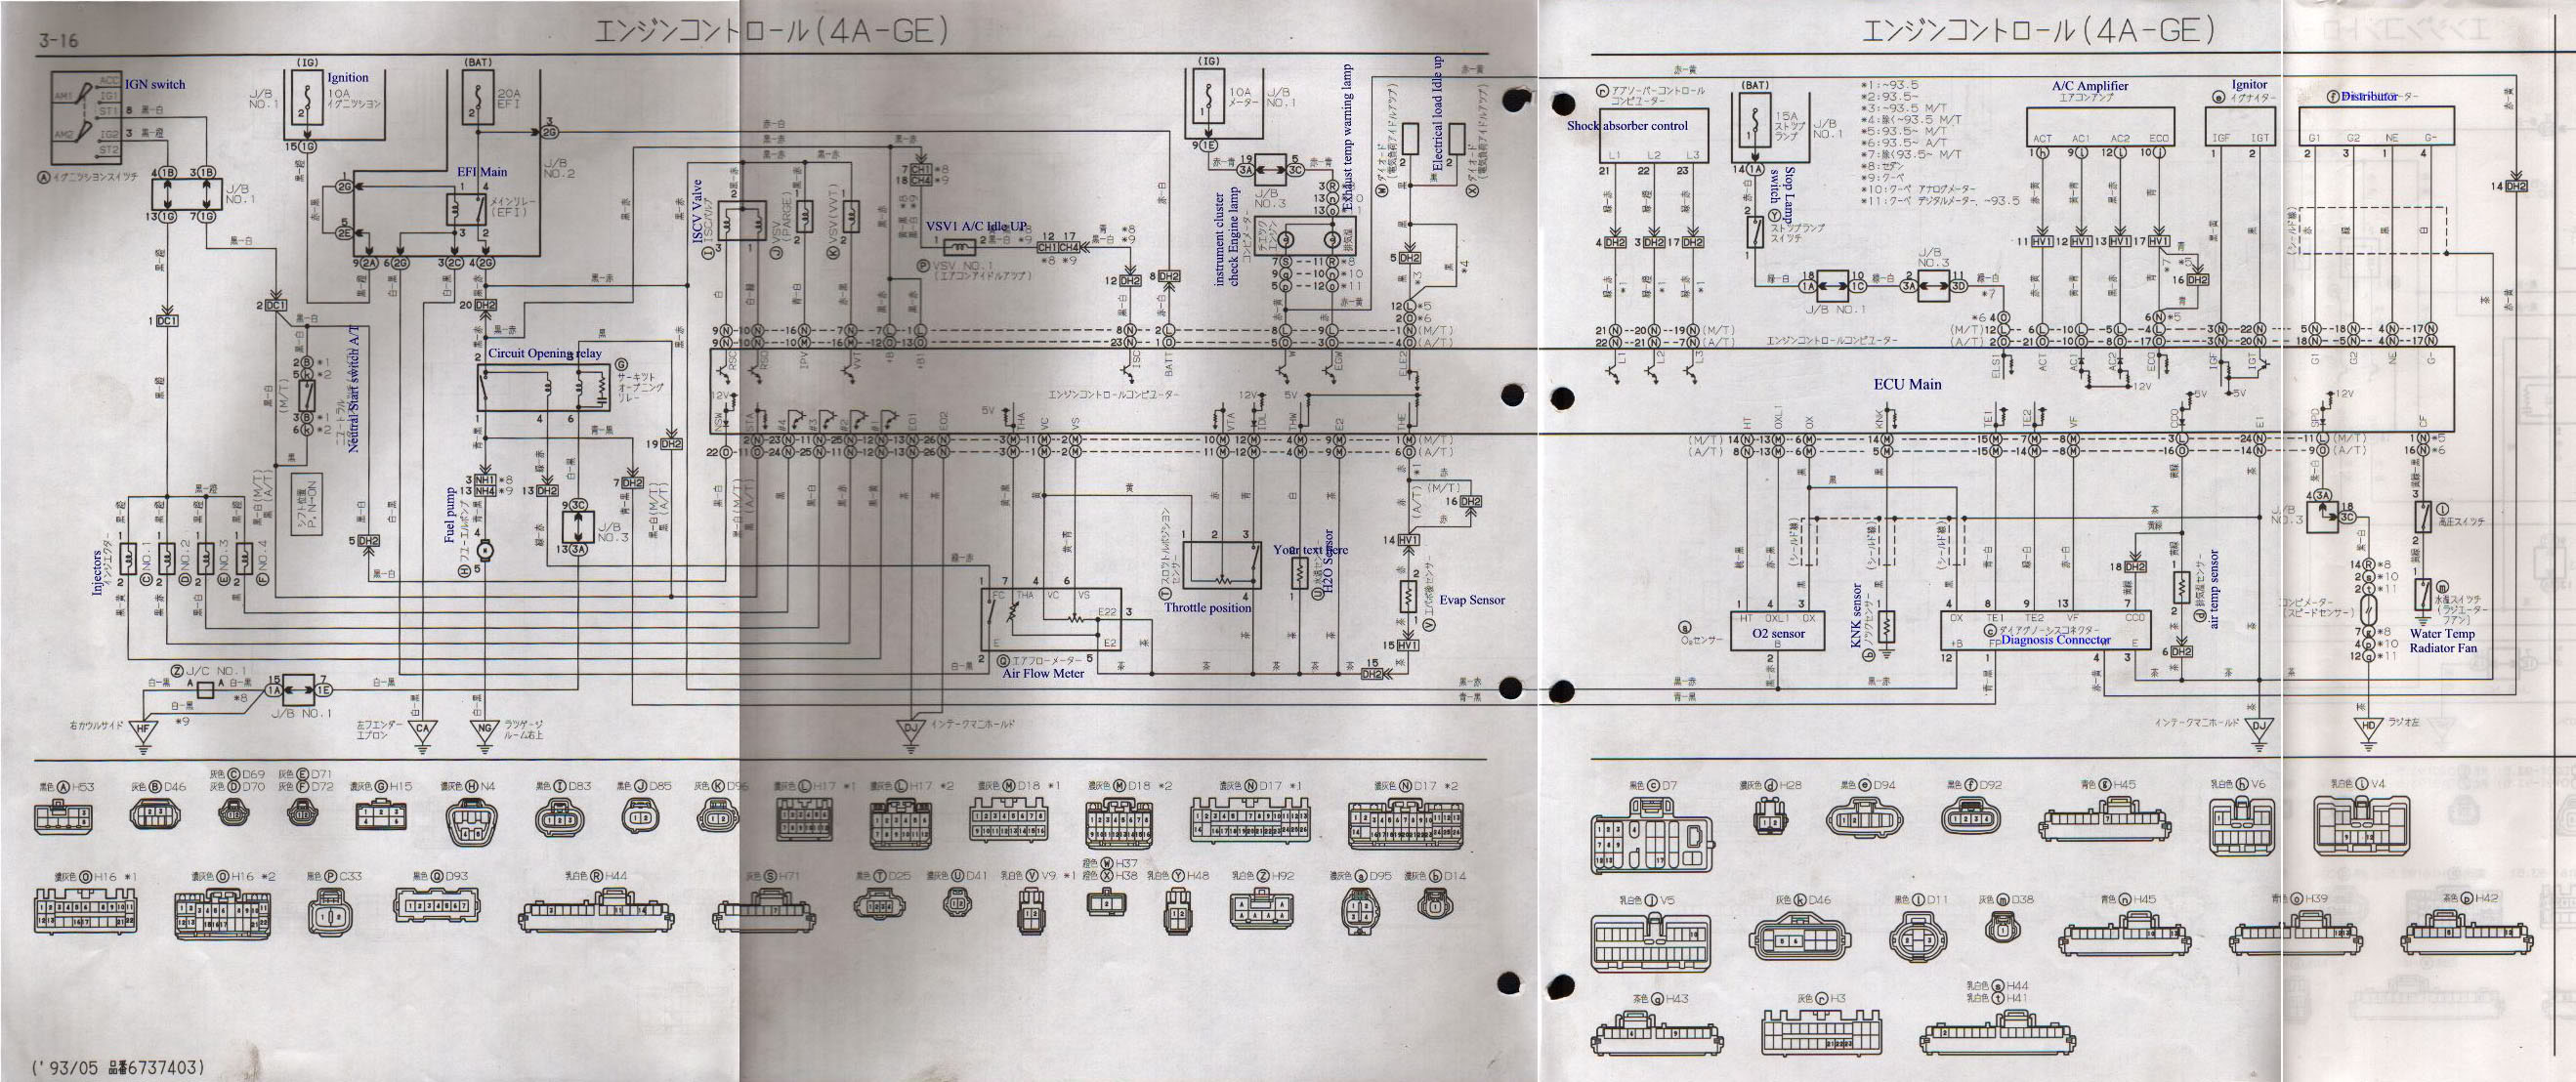 Toyota 4age Engine Diagram Automotive Wiring Vq35de Workshop Manuals General Information Diagrams Sq Engineering Rh Com Nissan